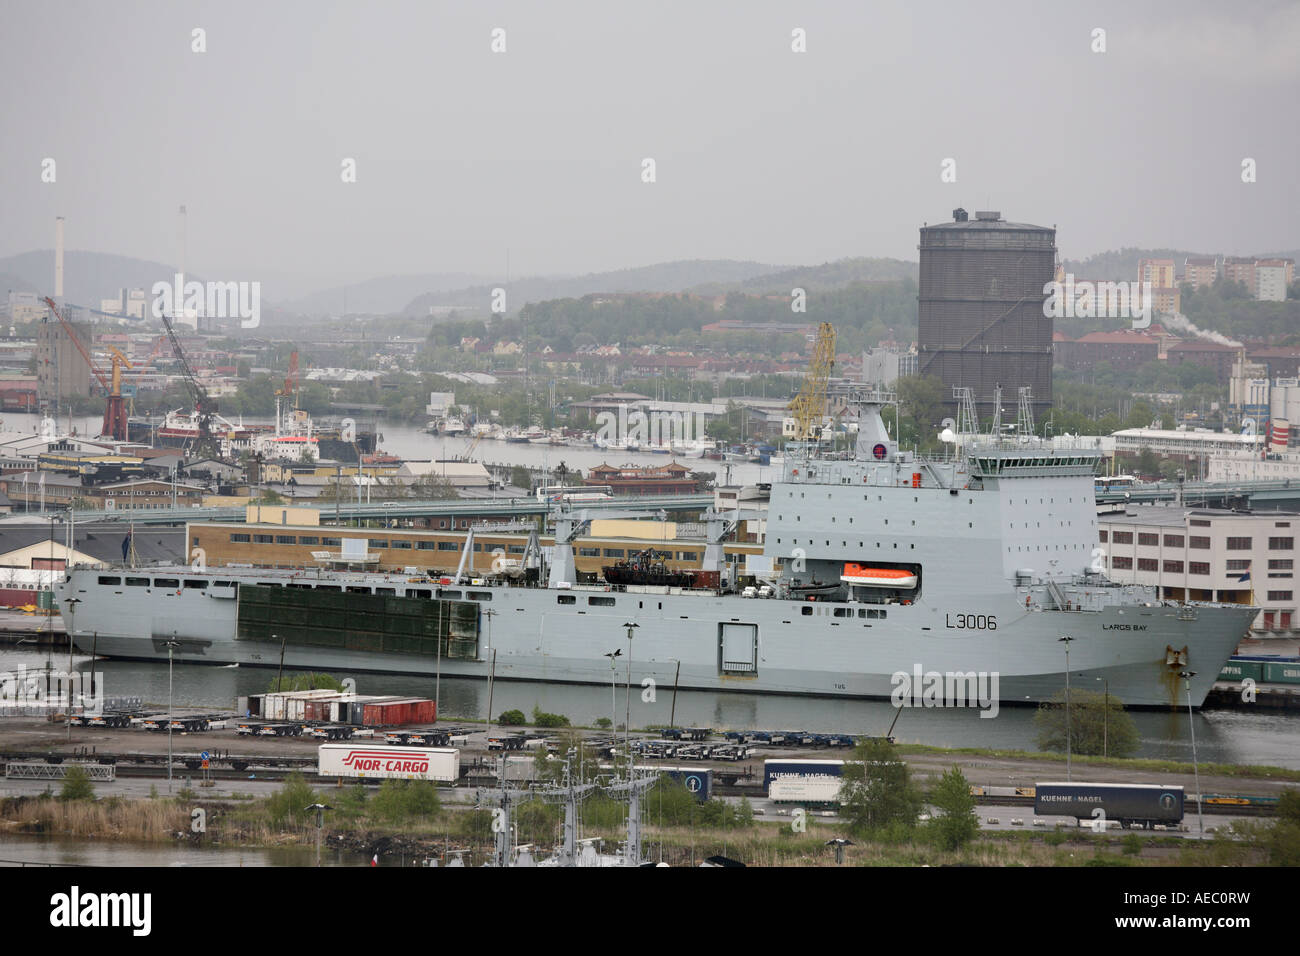 UK s Navy Ship RFA Largs Bay L3006 On mooring in Gothenburg s harbour Stock Photo